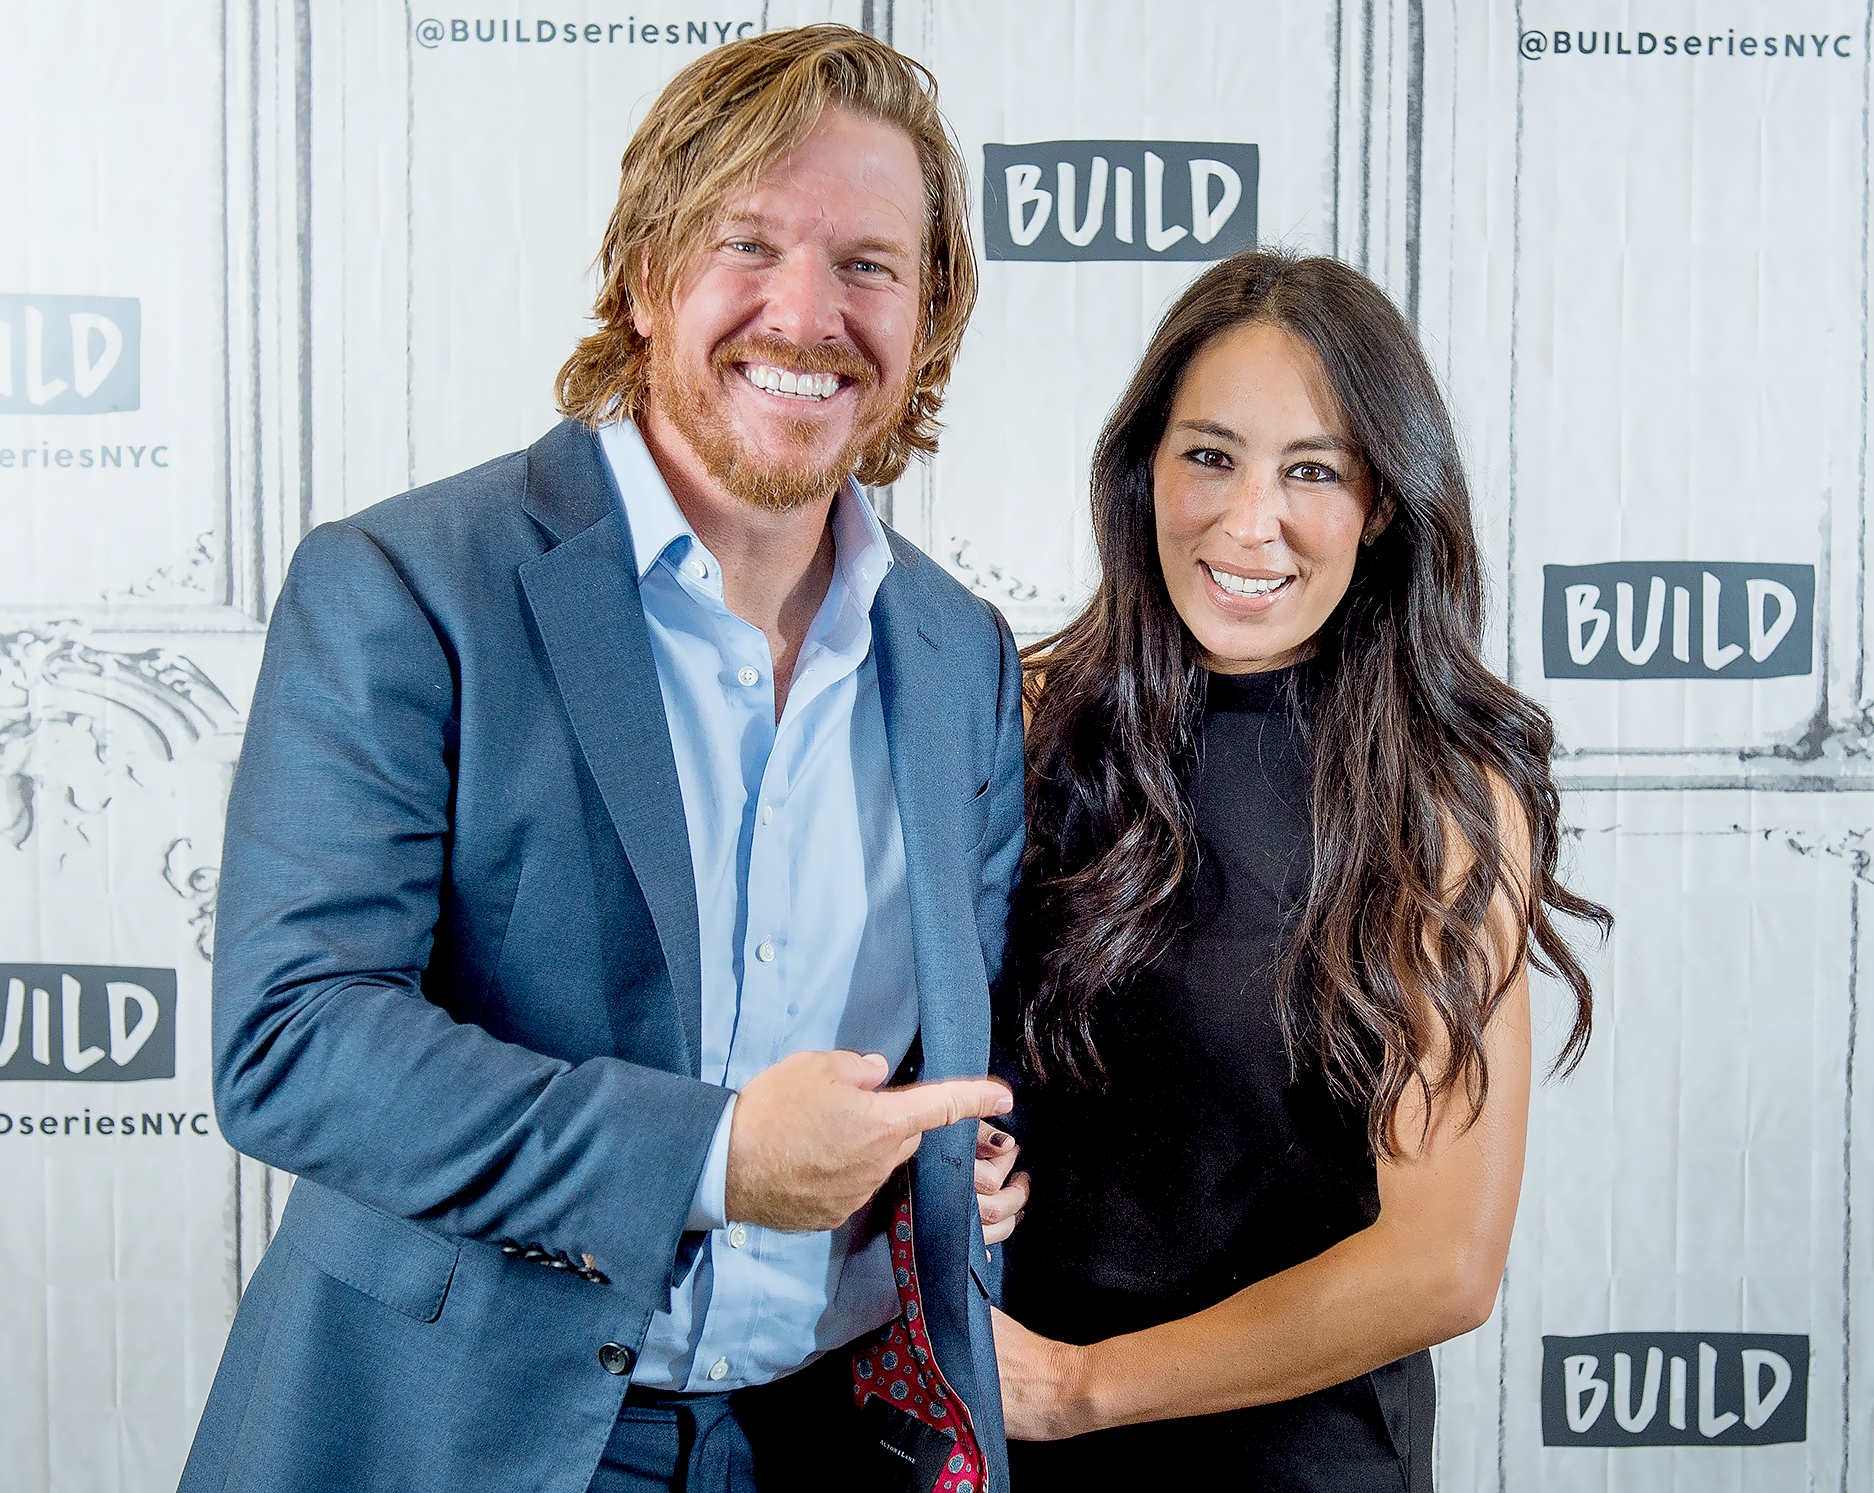 Chip Gaines of 'Fixer Upper' accidentally revealed fifth child's gender on Twitter